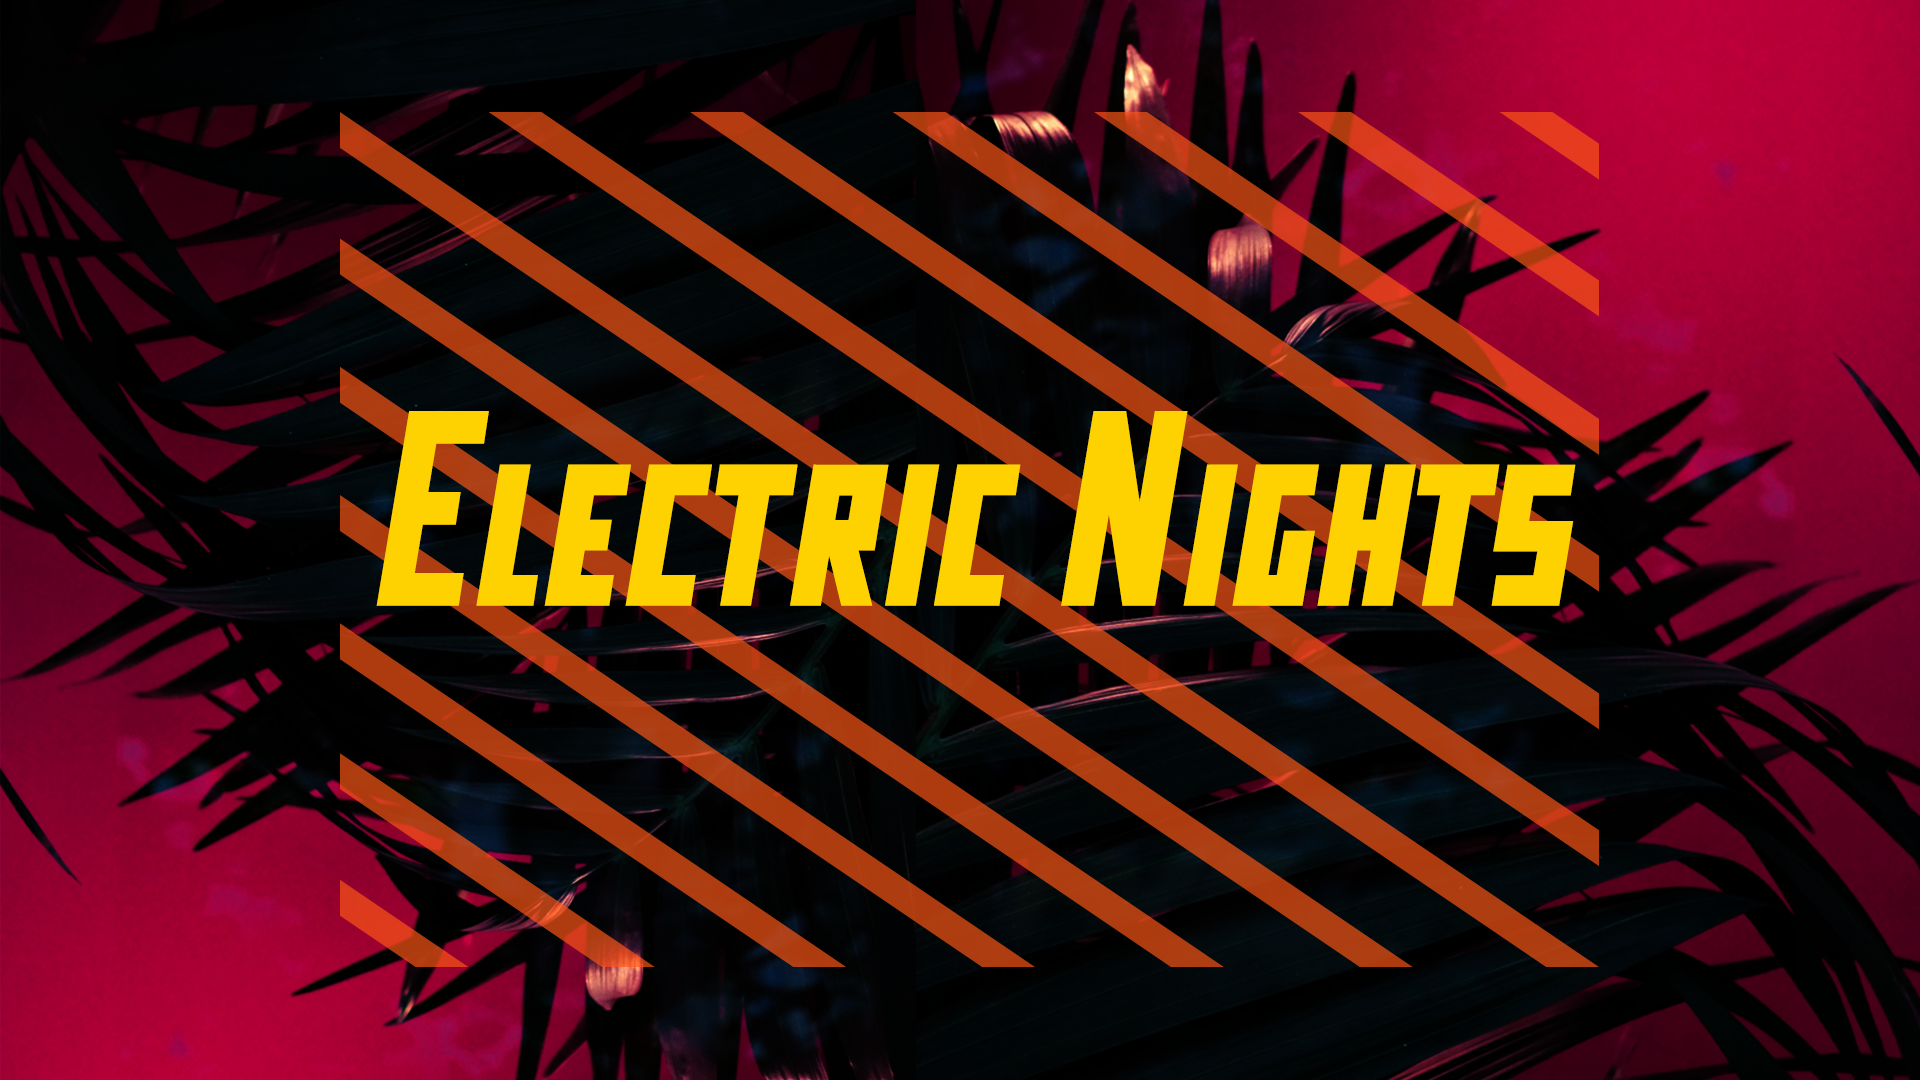 ELECTRIC NIGHTS TITLE.png